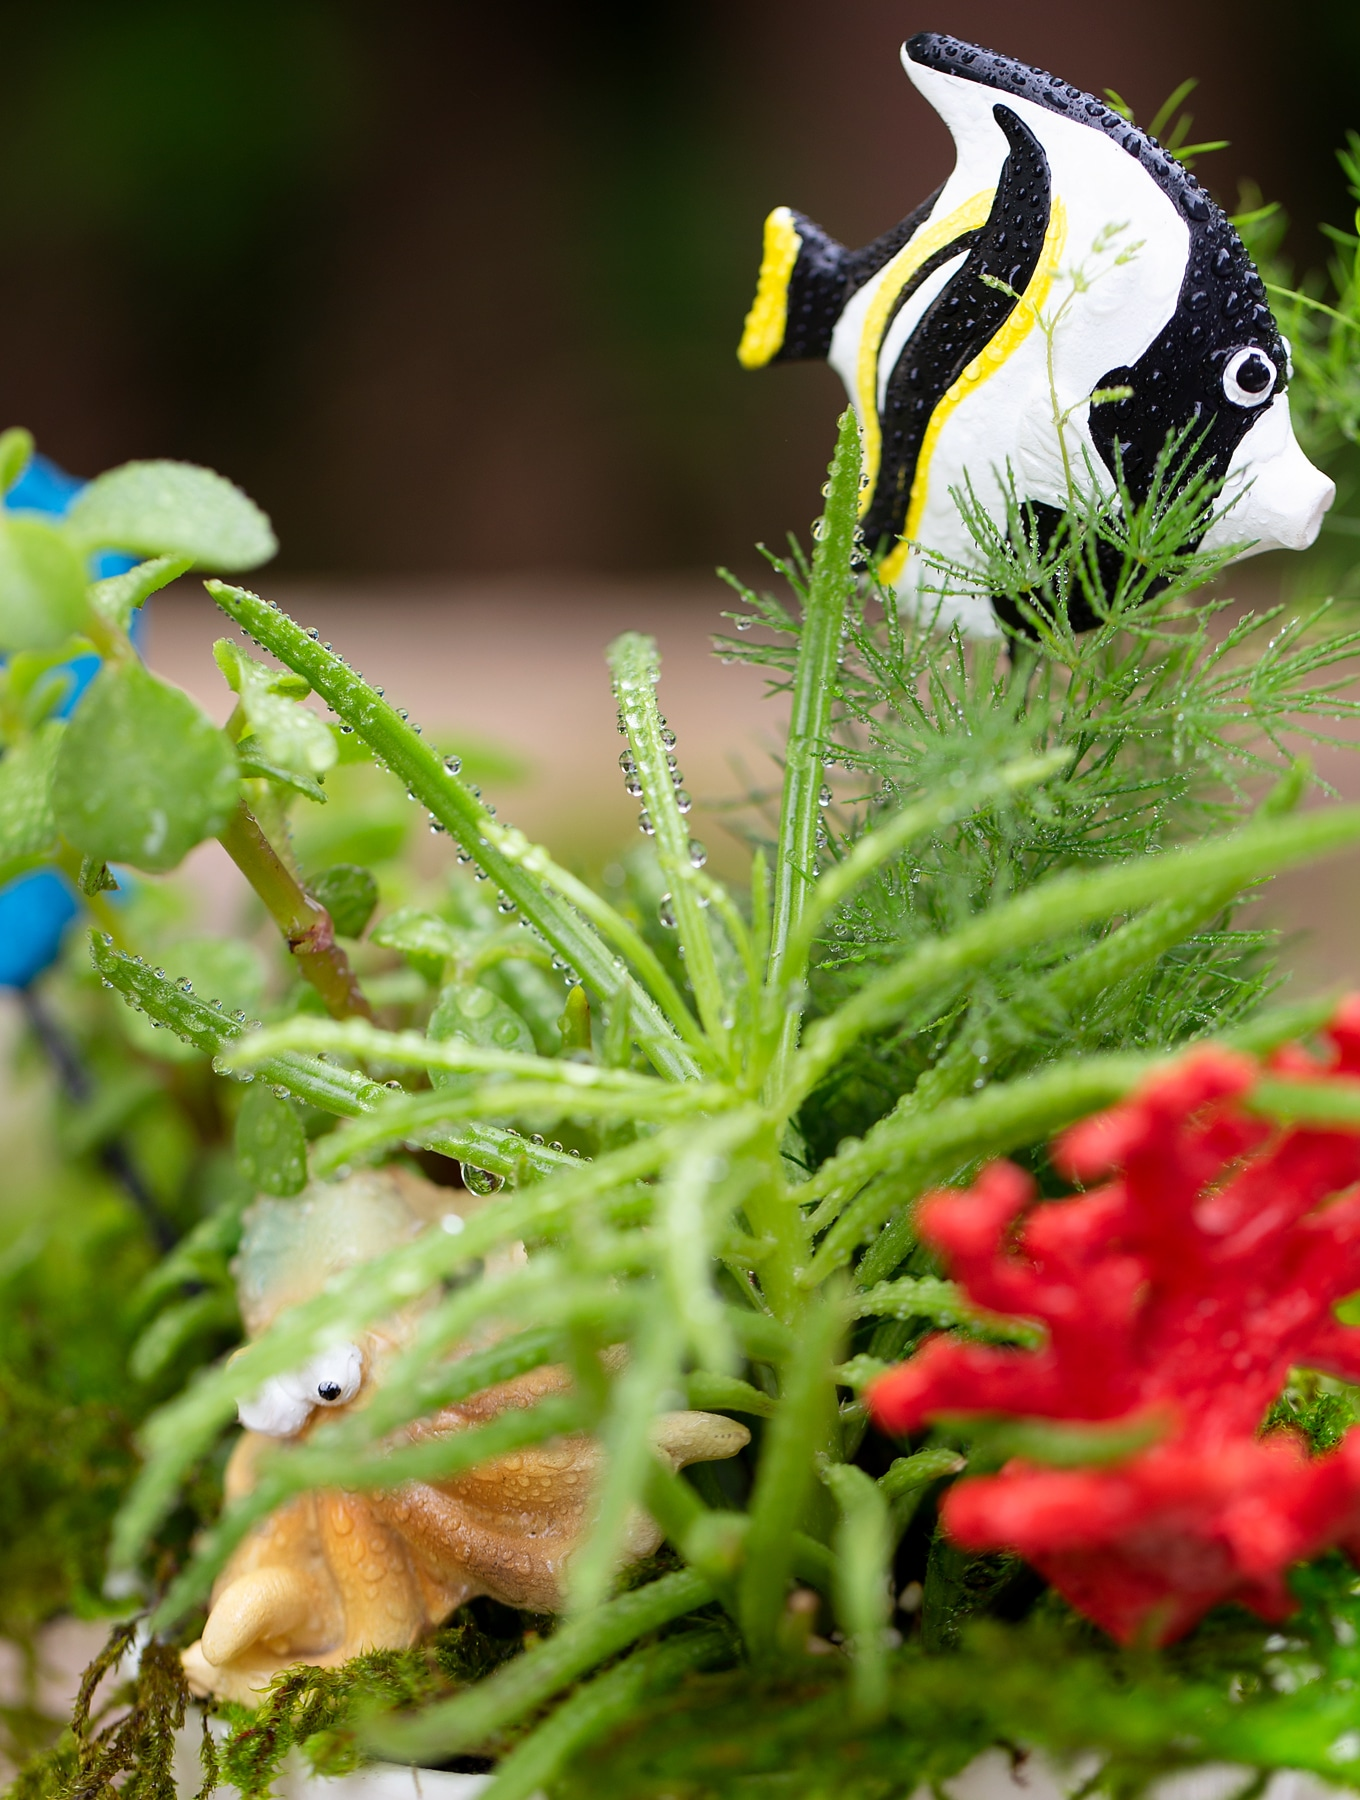 Freshly Watered Teacup Garden with Black and White Fish